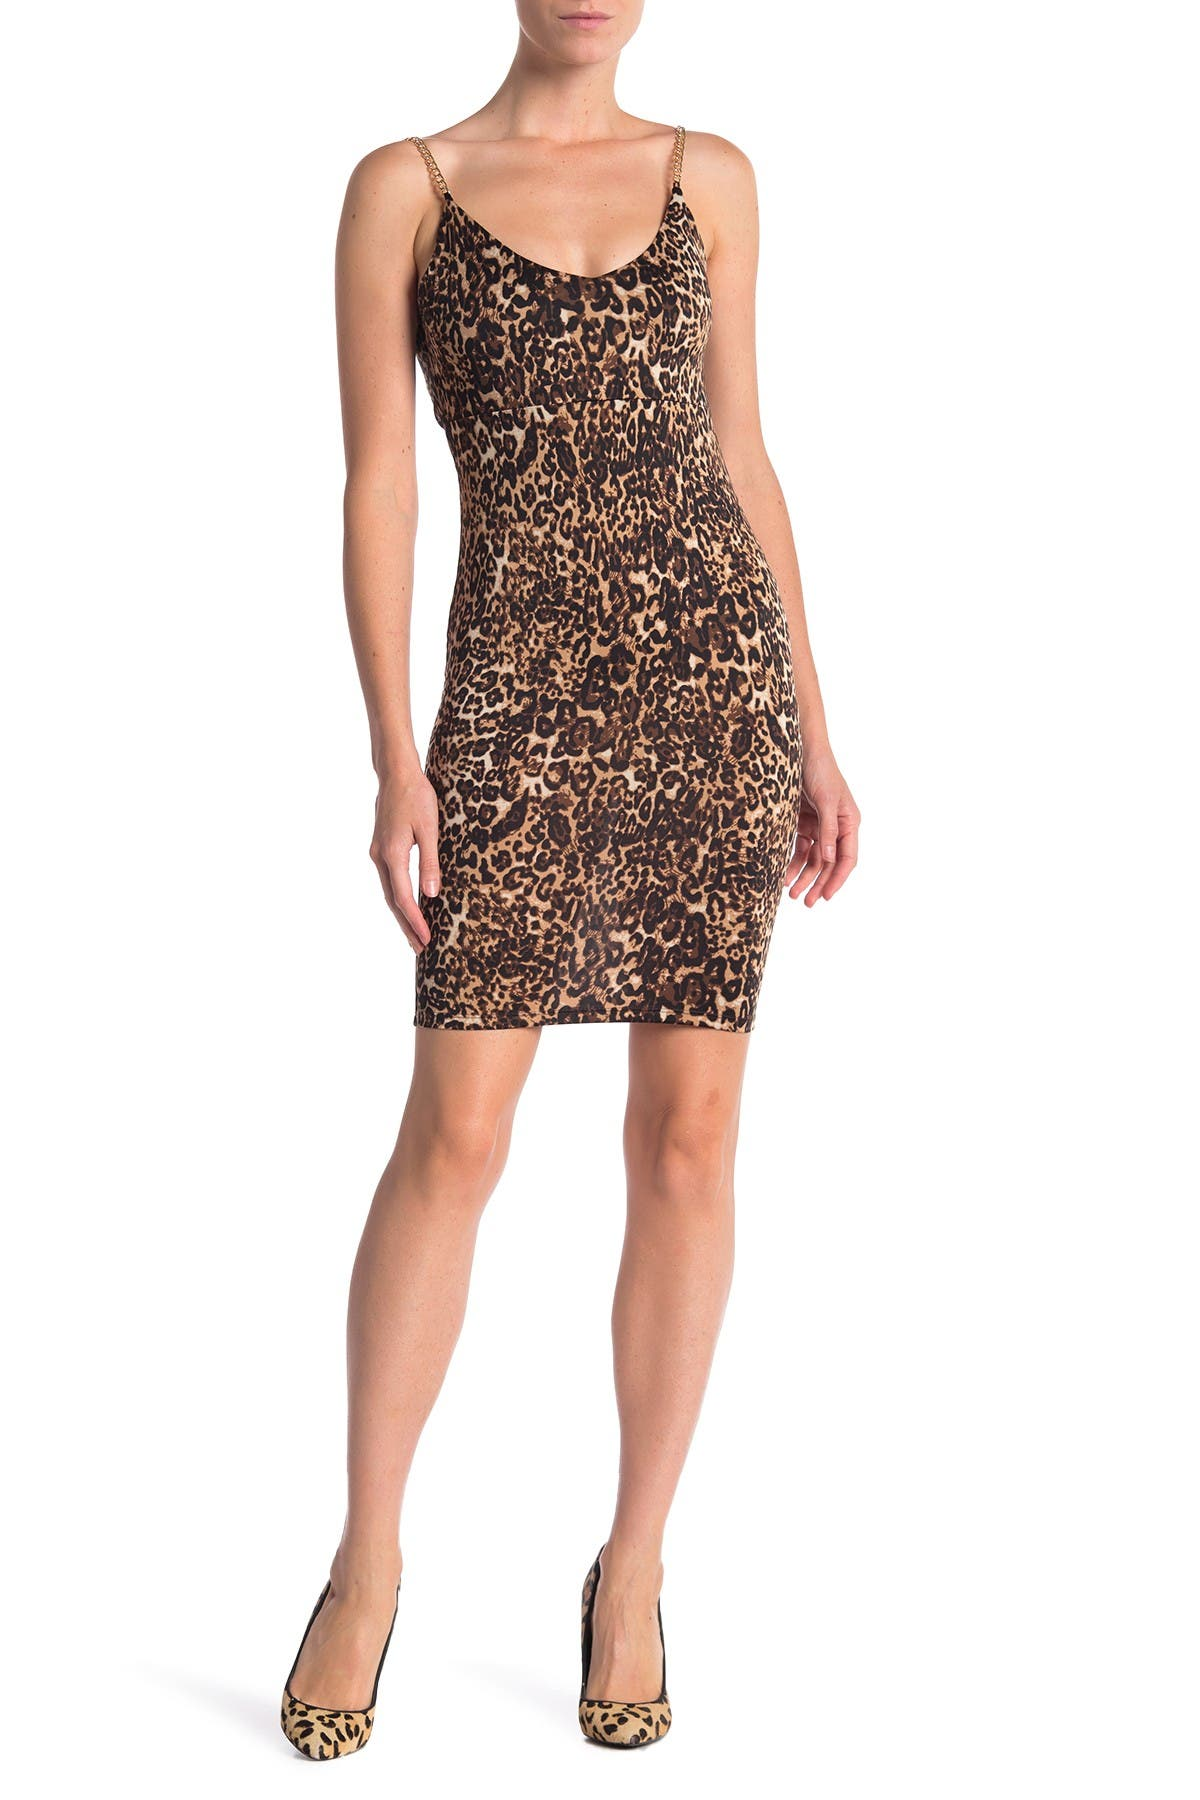 Image of bebe Chain Strap Cheetah Print Dress